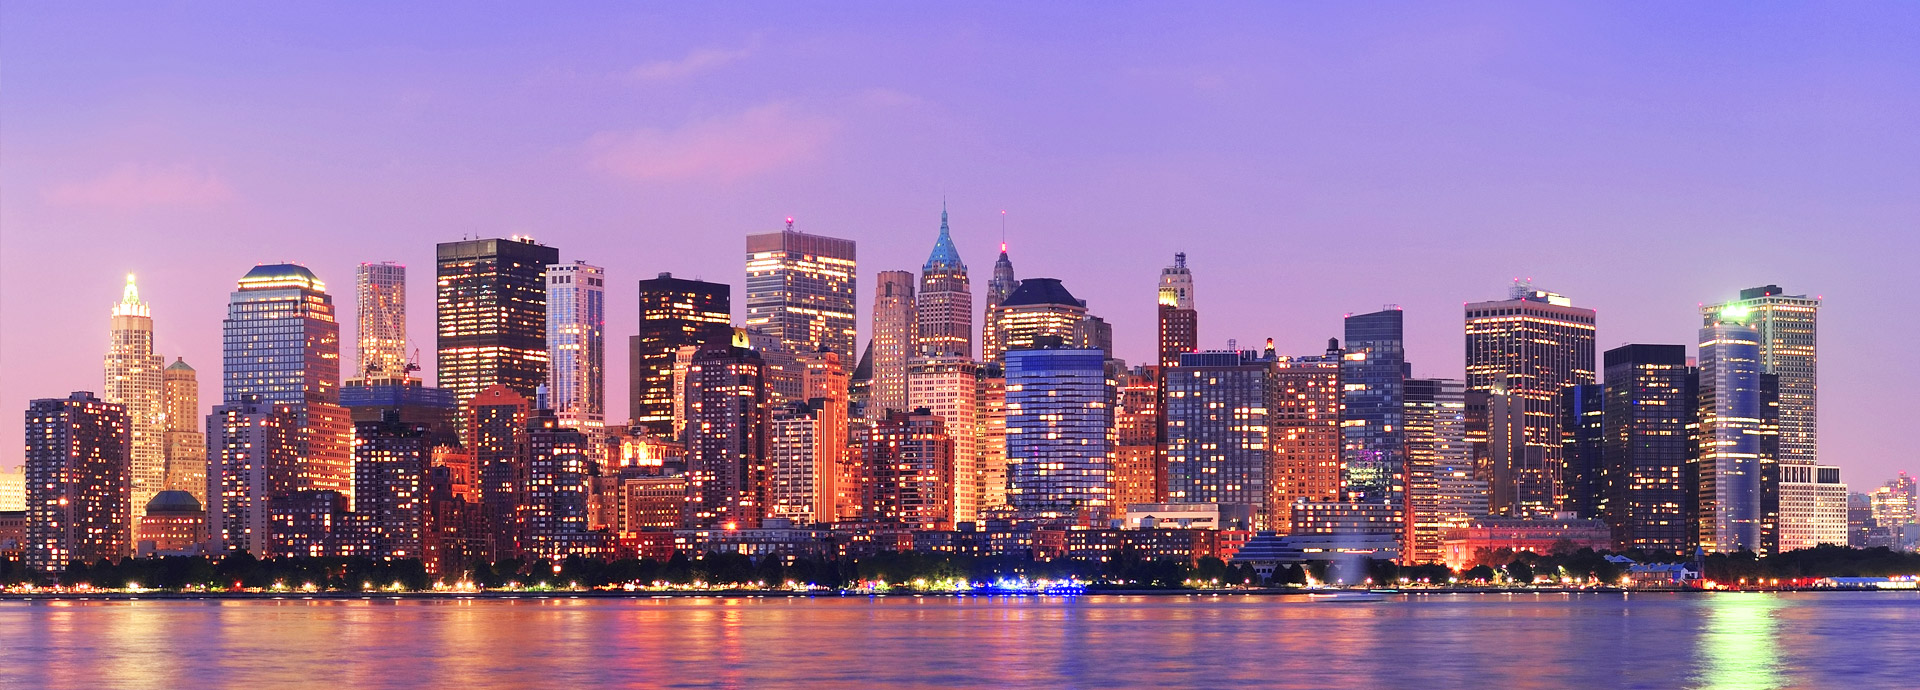 Best Hotel To Stay In New York For First Time